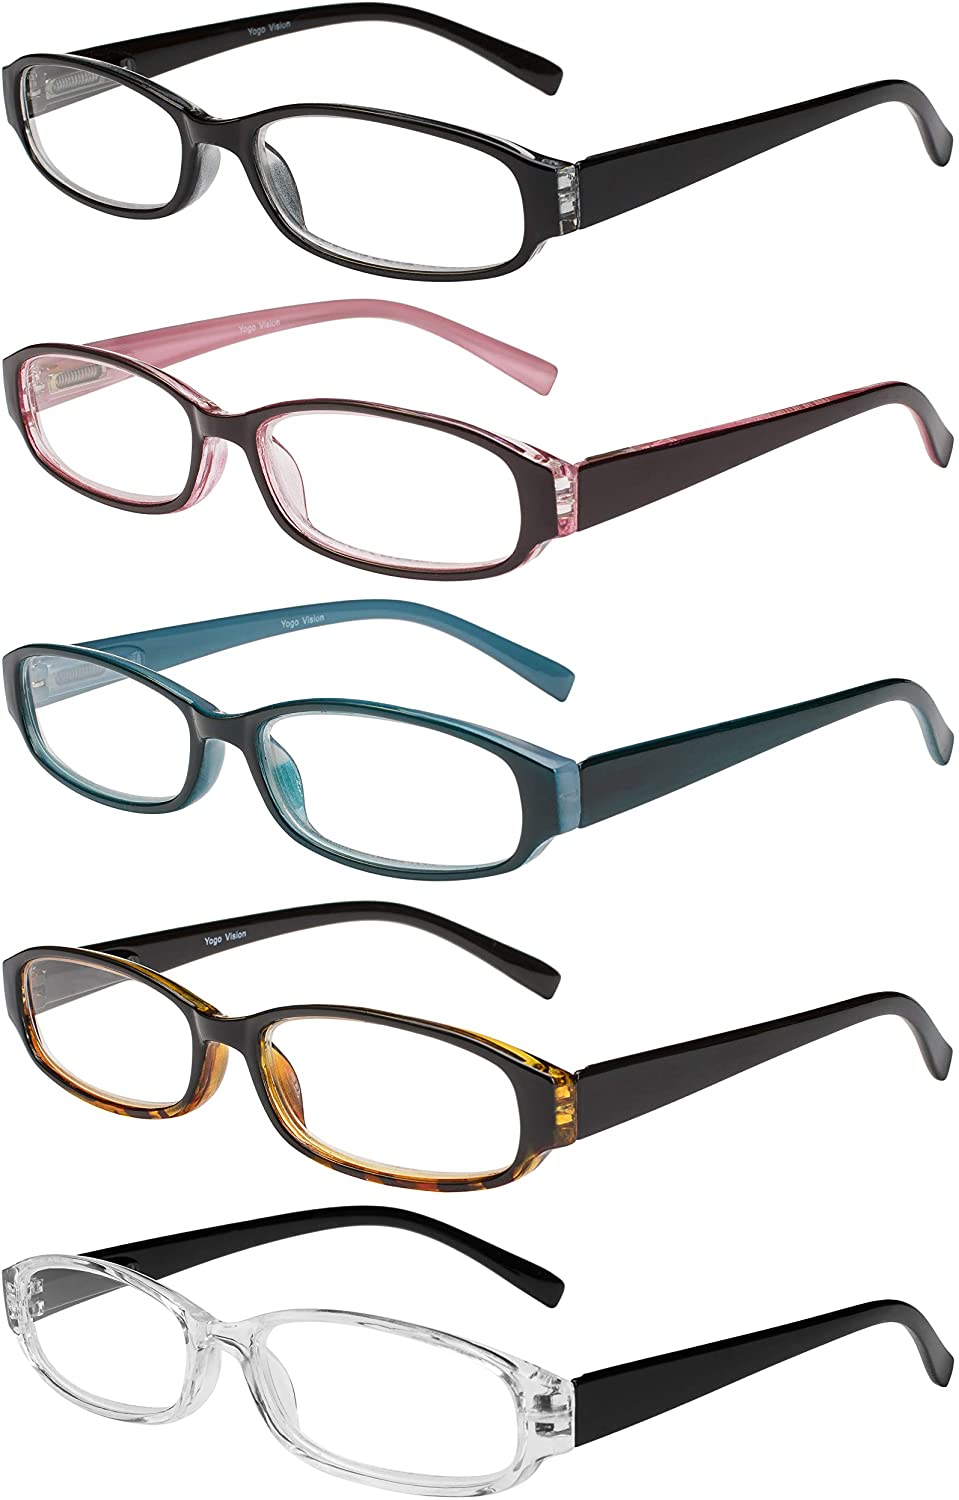 Reading Fashion Glasses 5 Pairs low-pricing Spring Quality for Readers Hinge Fashion